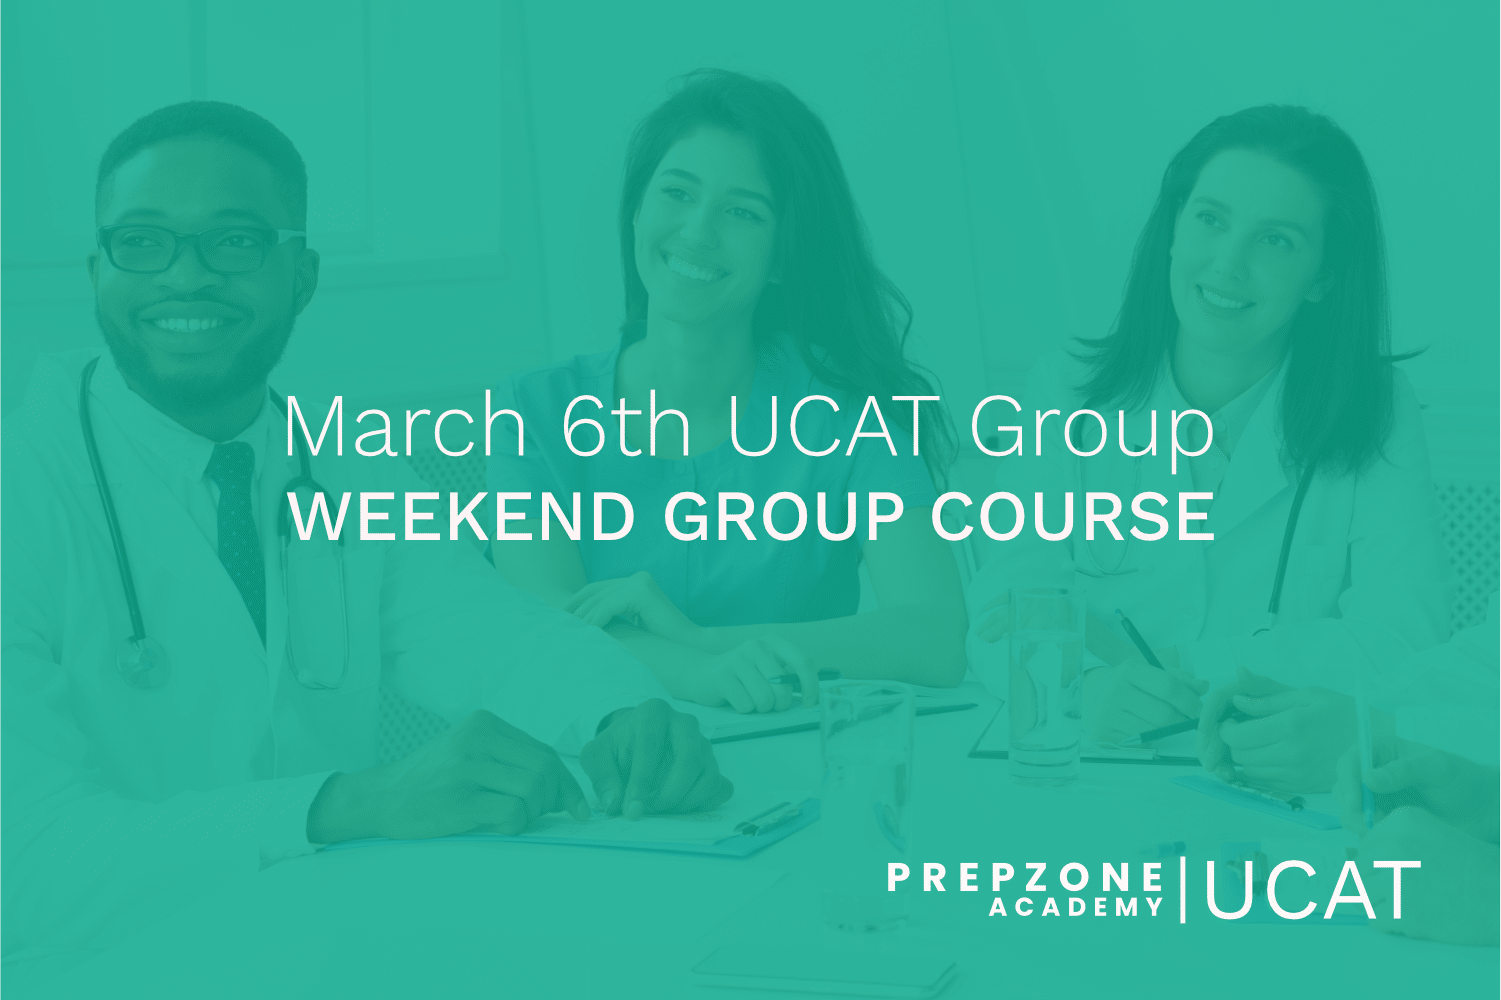 UCAT Weekend Group Course Schedule – March 6th, 2021